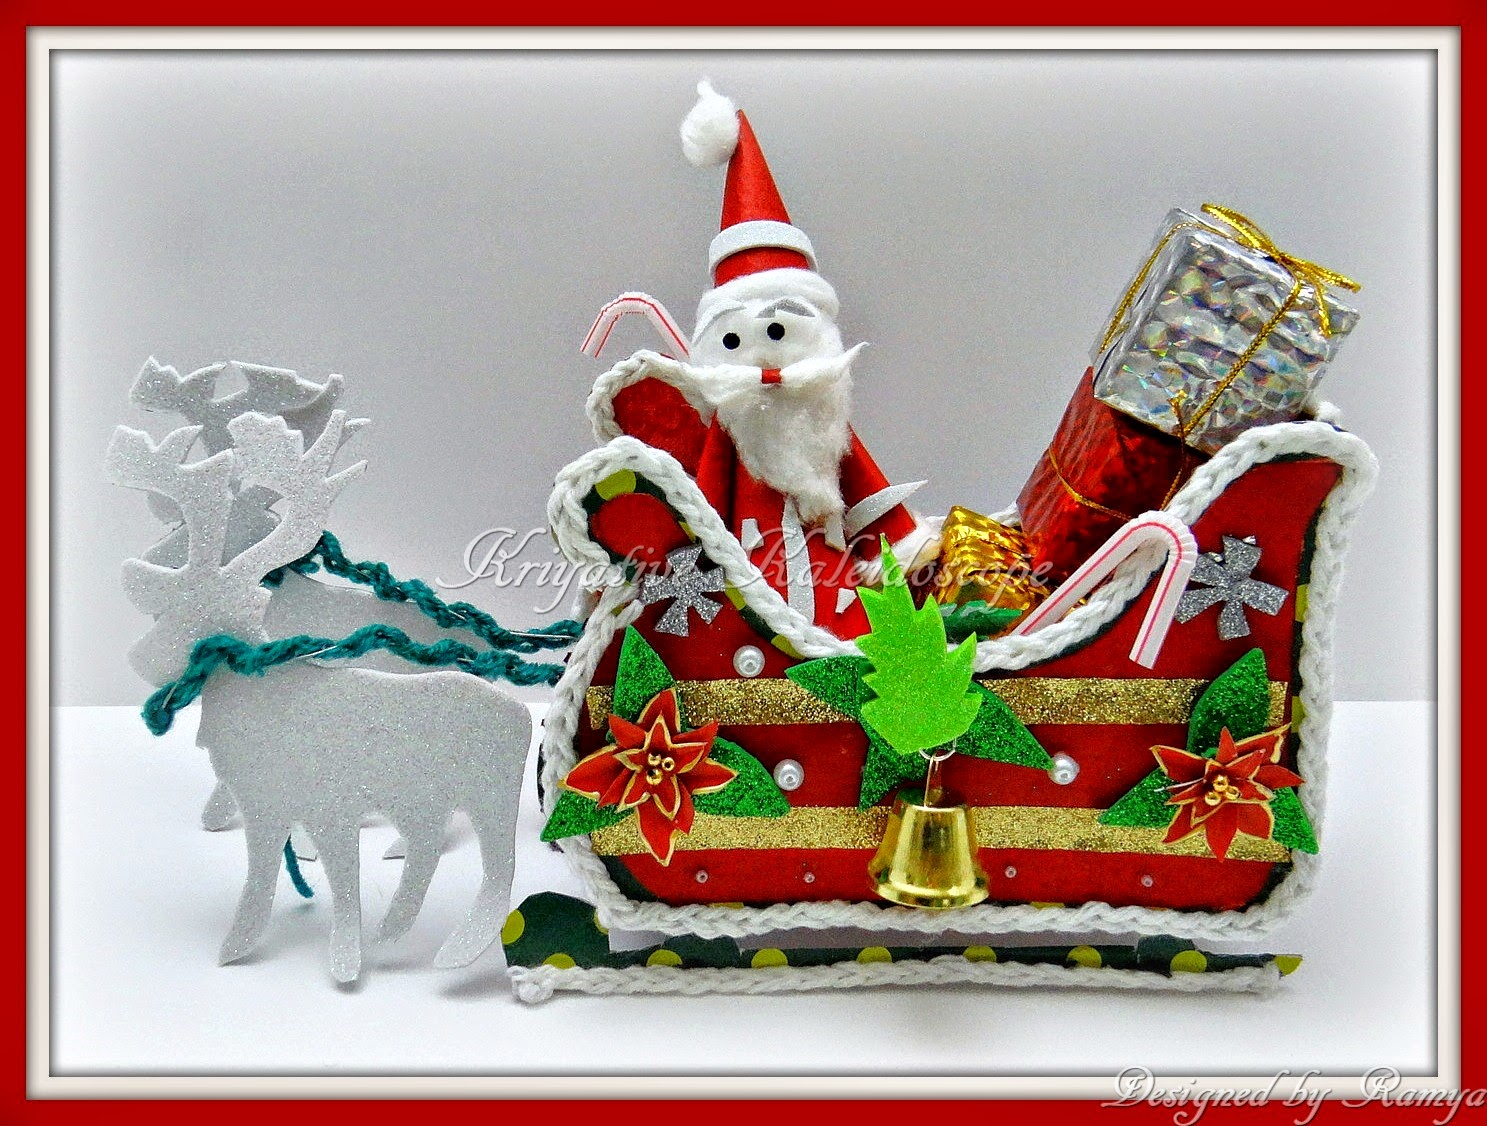 Santa sleigh ornament - So I Made A Santa Sleigh With Santa Claus Reindeer And Gifts To Make It Look More Merrier I Added Two Christmas Trees On The Sides